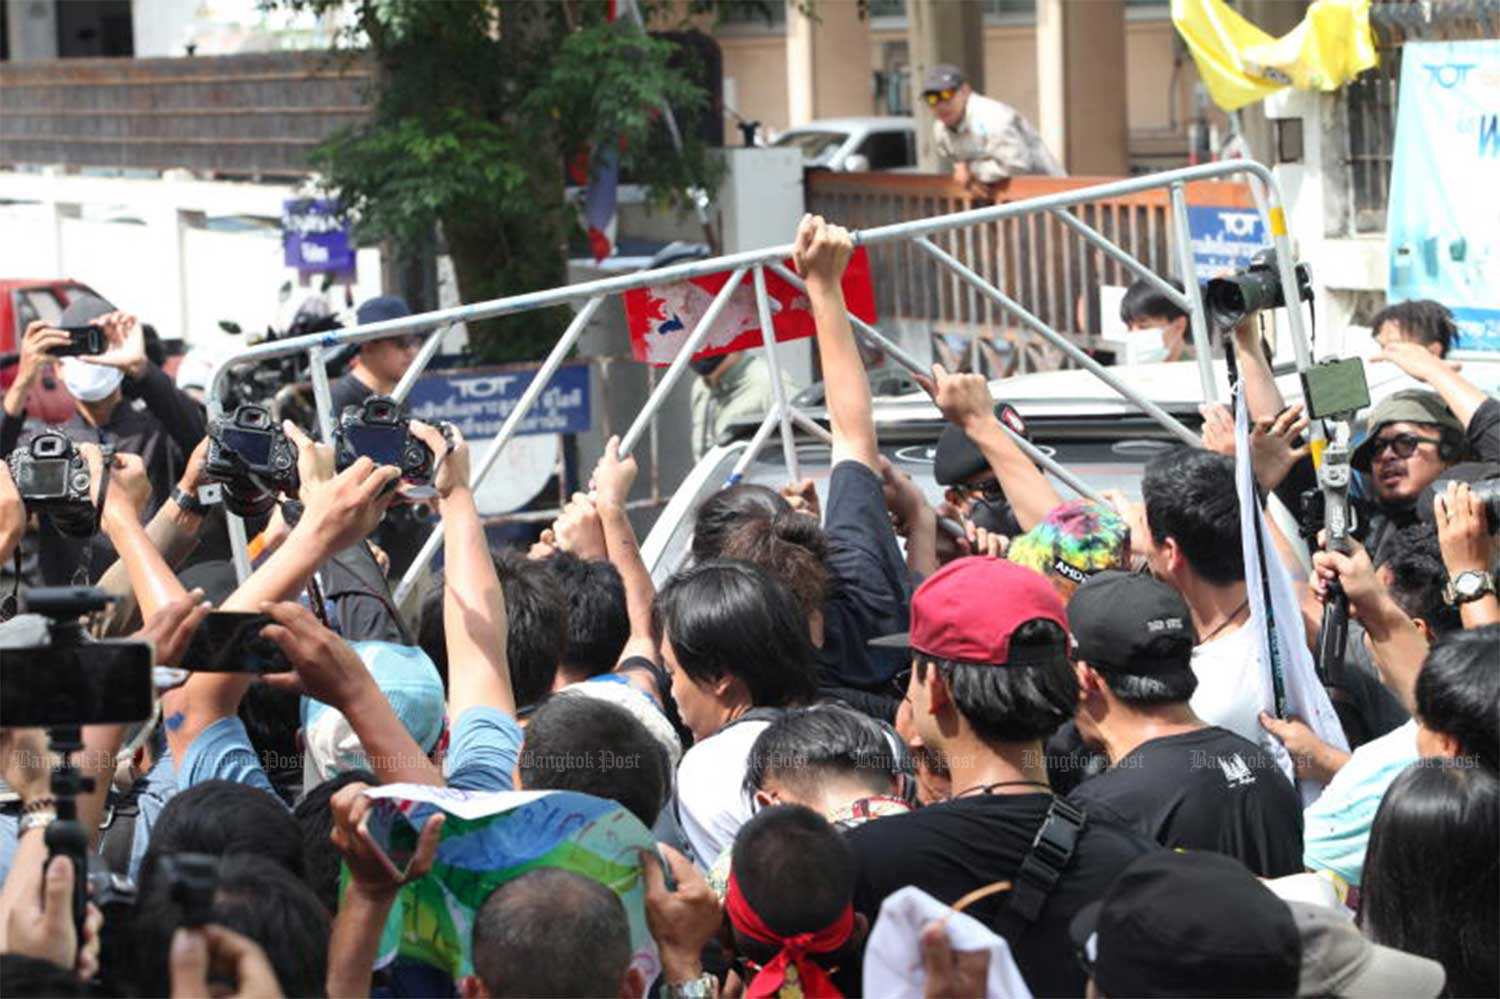 Supporters of pro-democracy activists remove police barricades in front of Samran Rat police station in Bangkok, as 15 activists arrive to acknowledge charges against them in connection with a rally on July 18. (Photo by Apichart Jinakul)